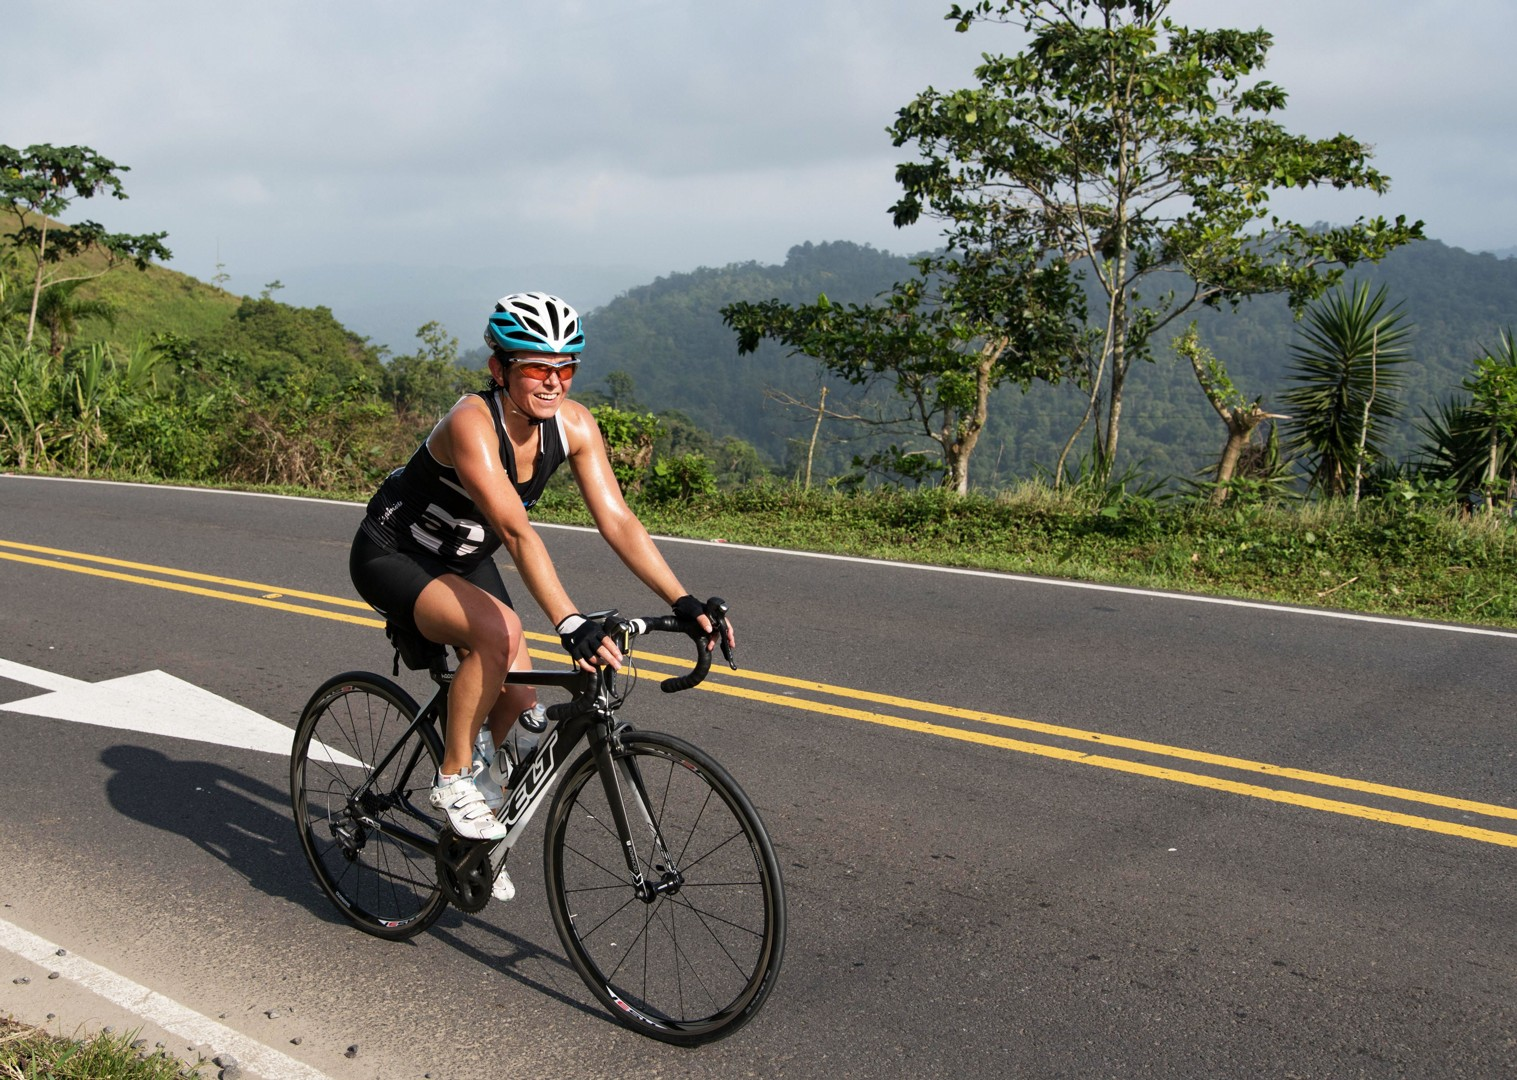 San-jose-guided-road-cycling-holiday-ruta-de-los-volcanes-costa-rica.jpg - Costa Rica - Ruta de los Volcanes - Road Cycling